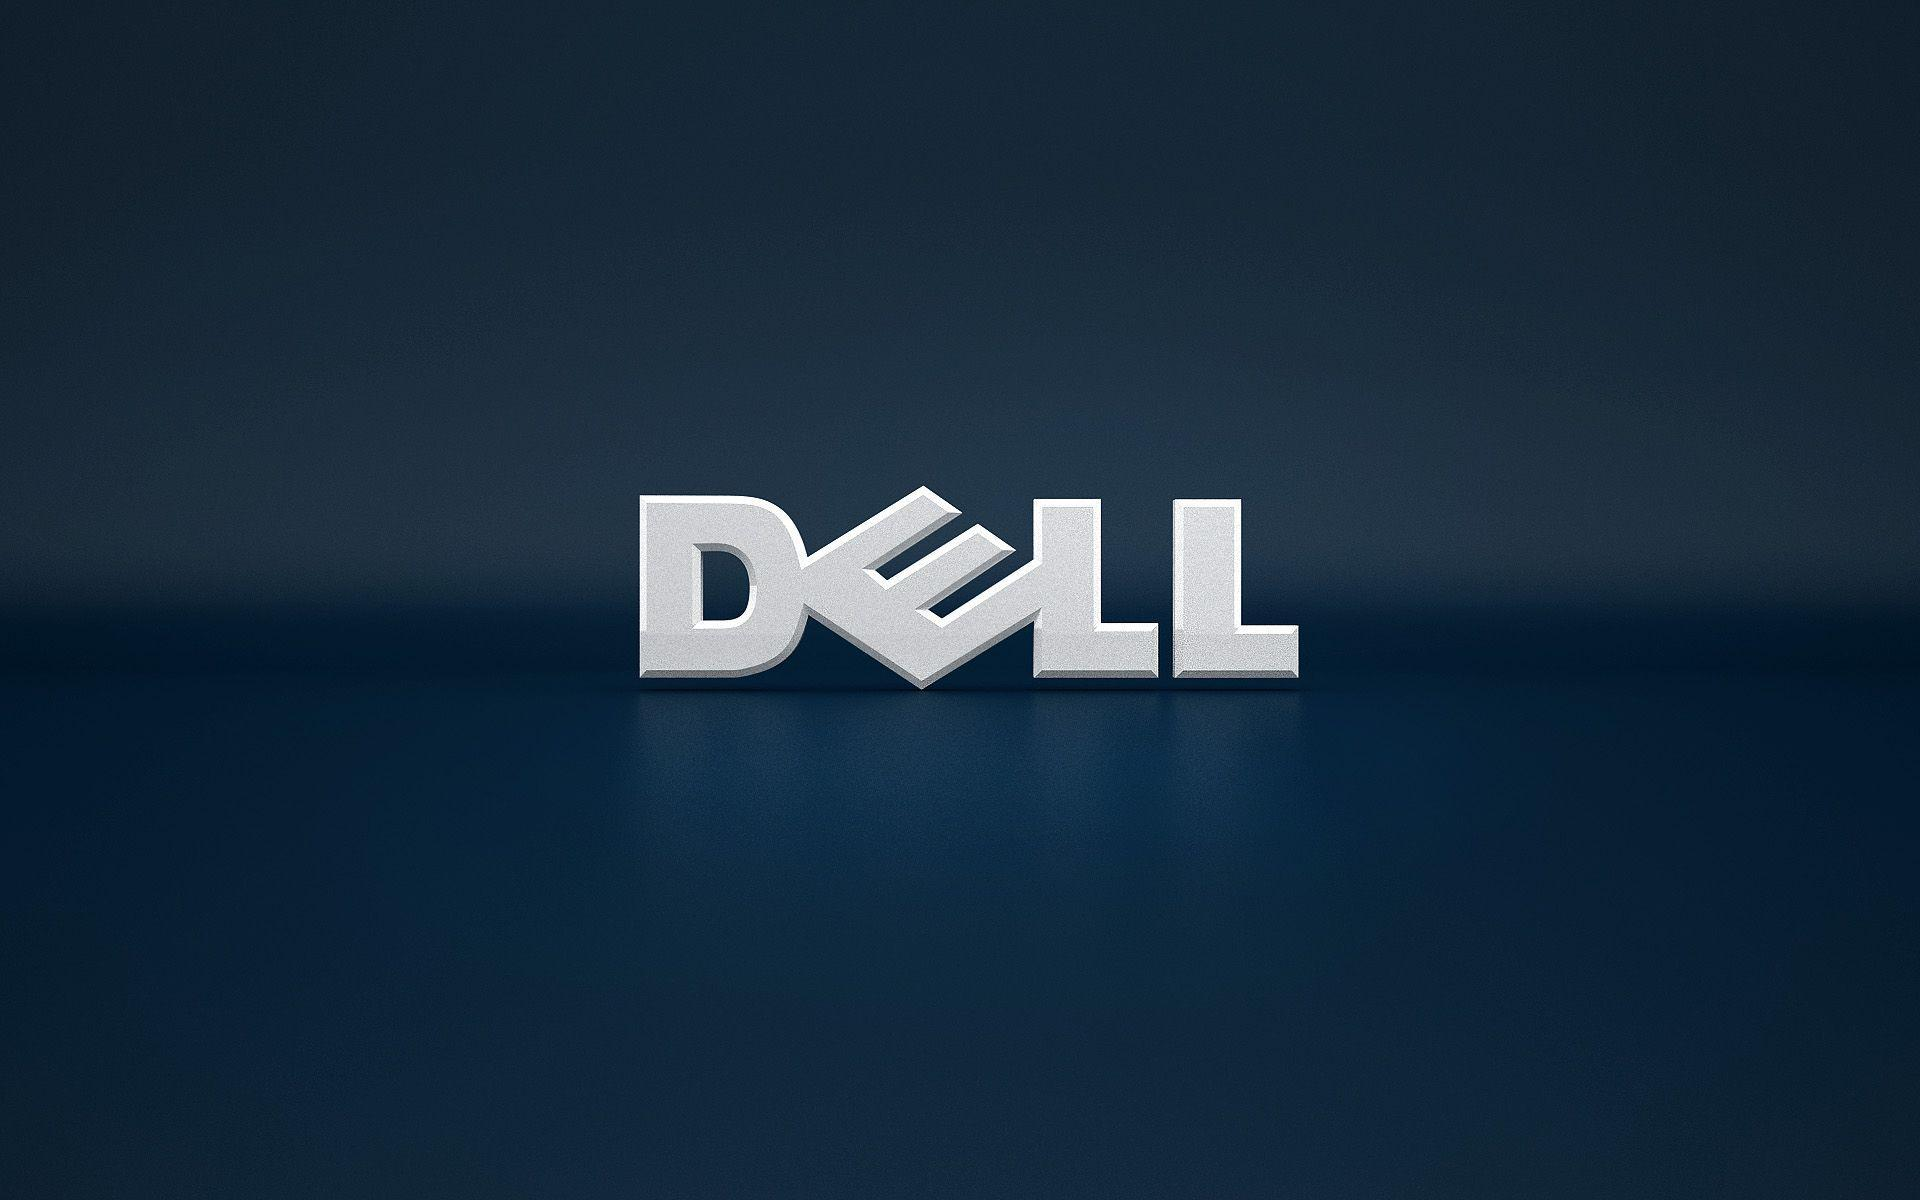 dell xps wallpaper own - photo #26